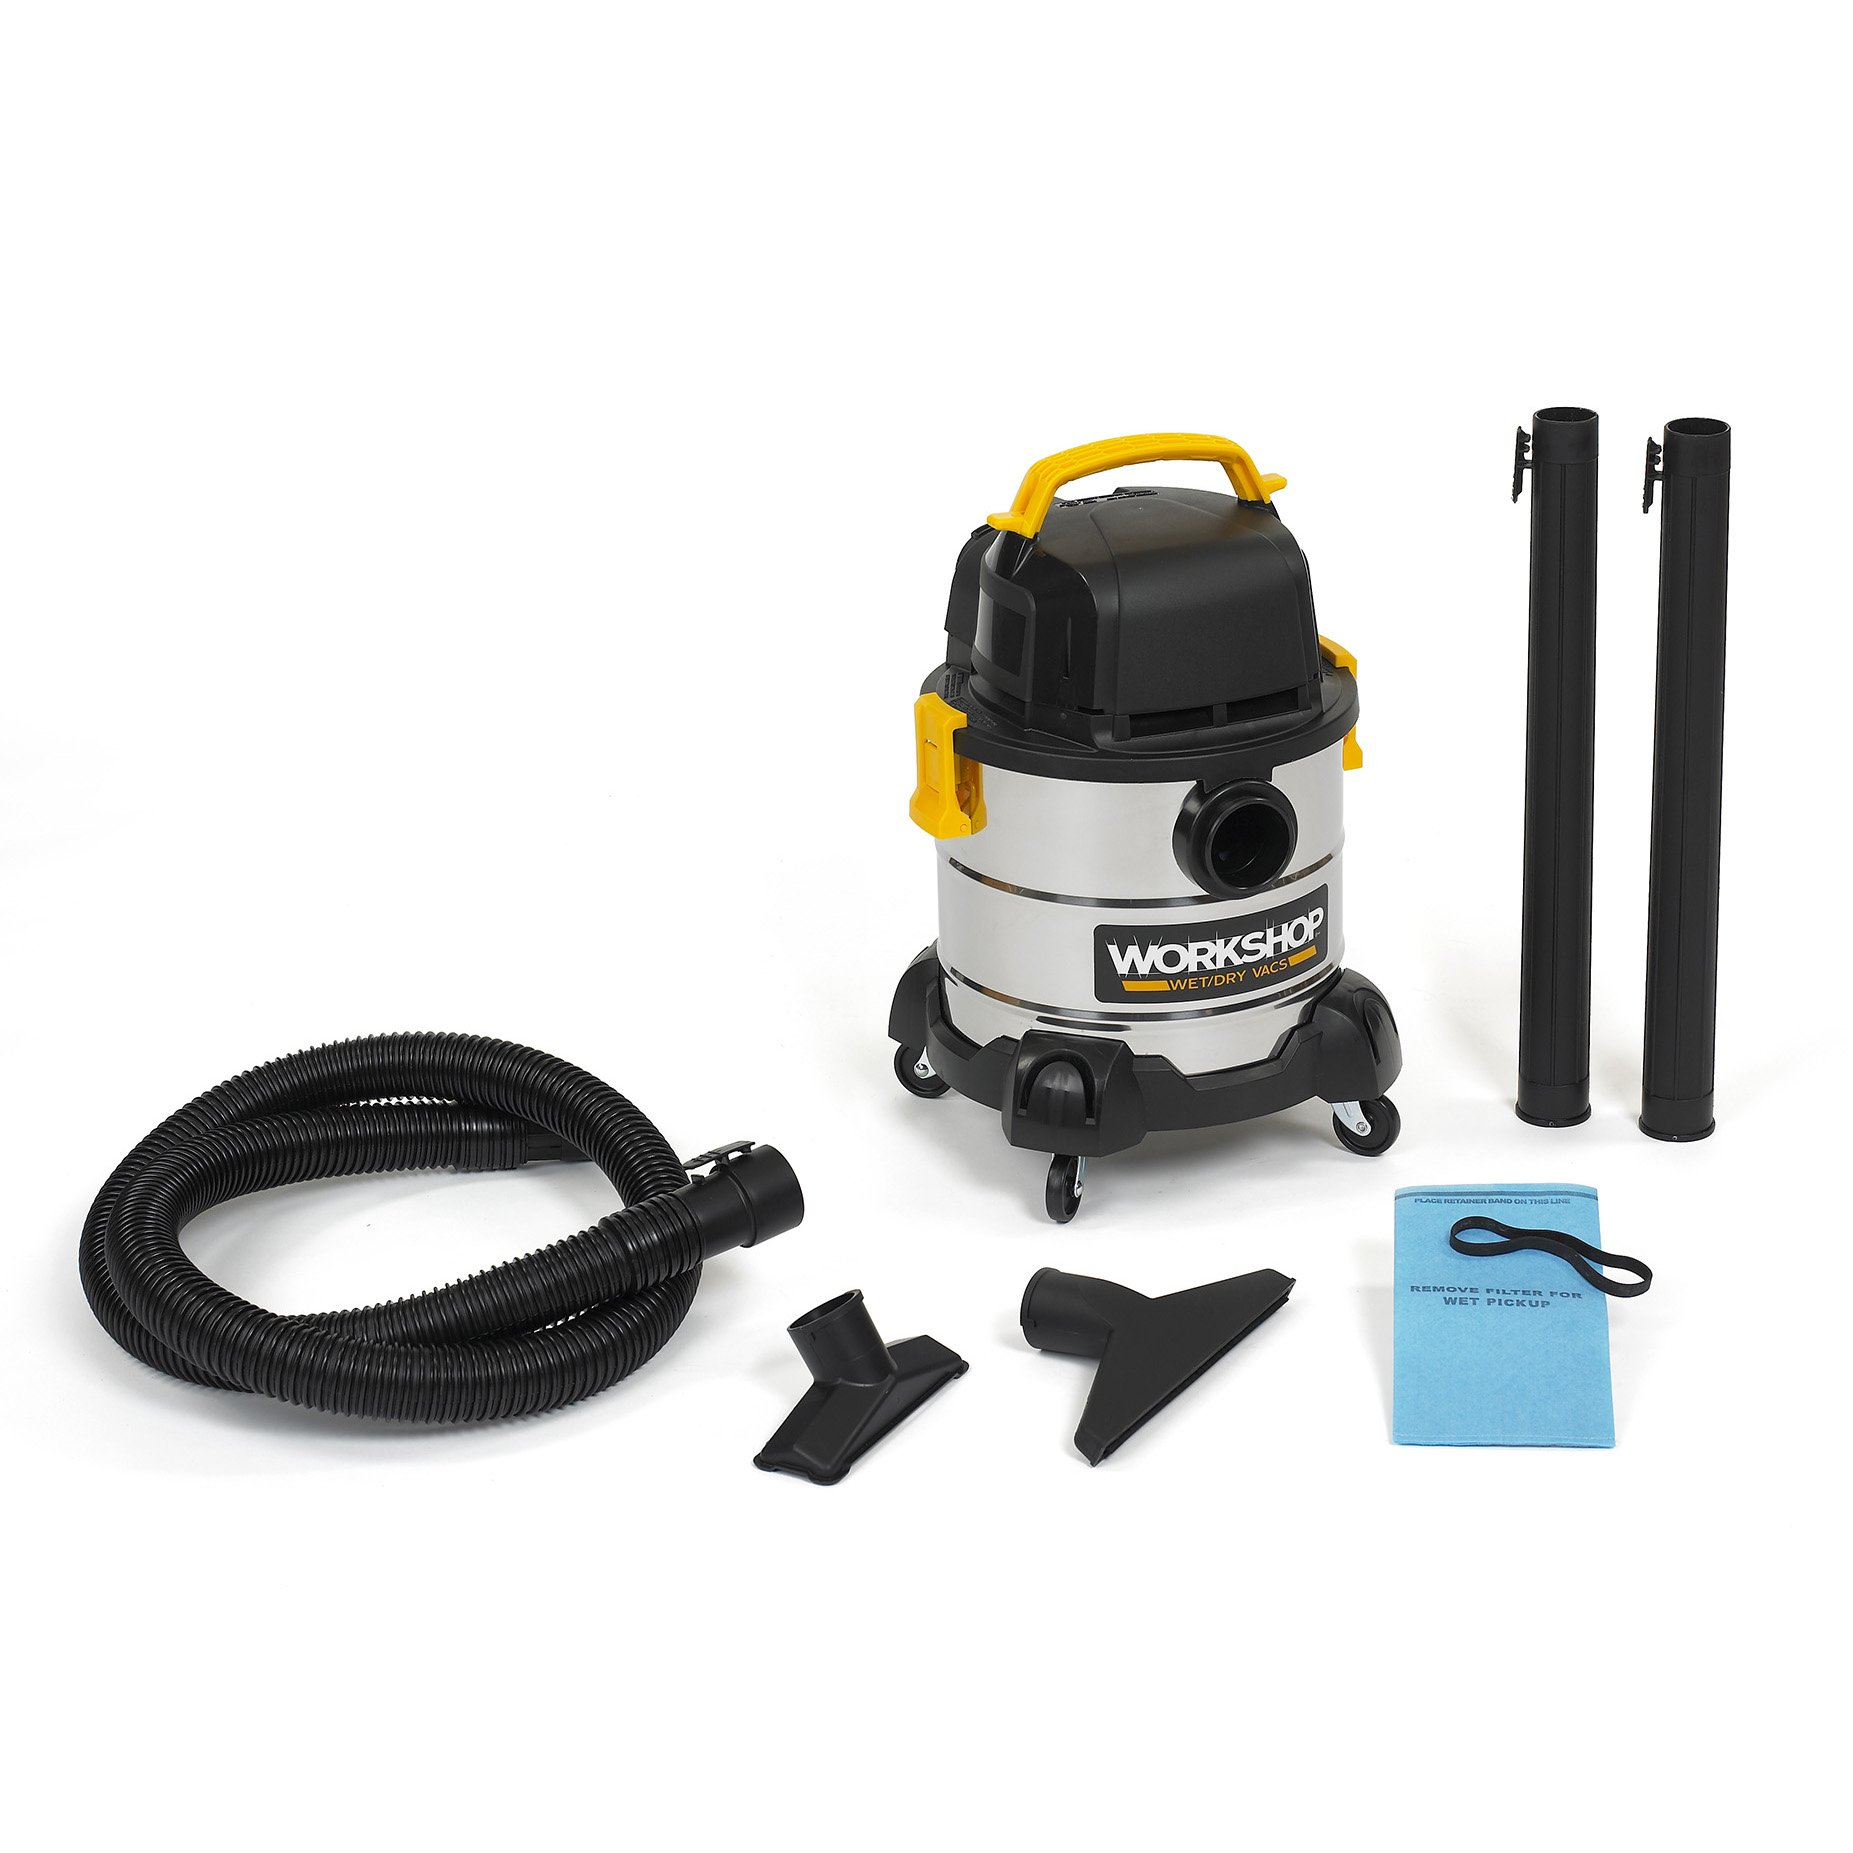 WORKSHOP Stainless Wet Dry Vac WS0400SS Stainless Steel Wet Dry Vacuum Cleaner, 4-Gallon Stainless Steel Portable Shop Vacuum Cleaner, 2.5 Peak HP Portable Wet Vac